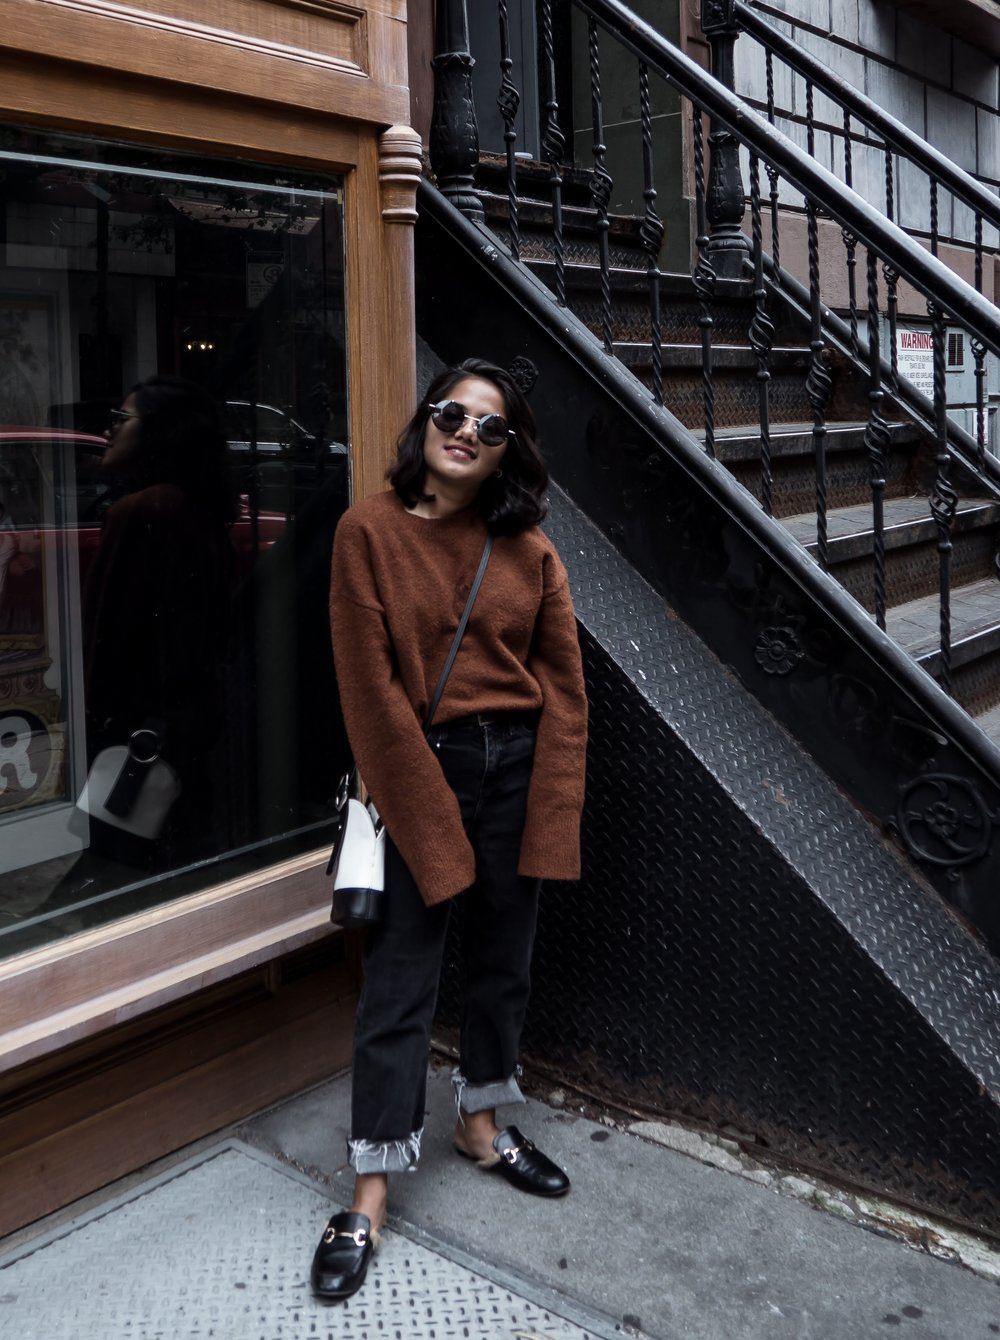 & Other Stories Brown Sweater & River Island Petite Jeans